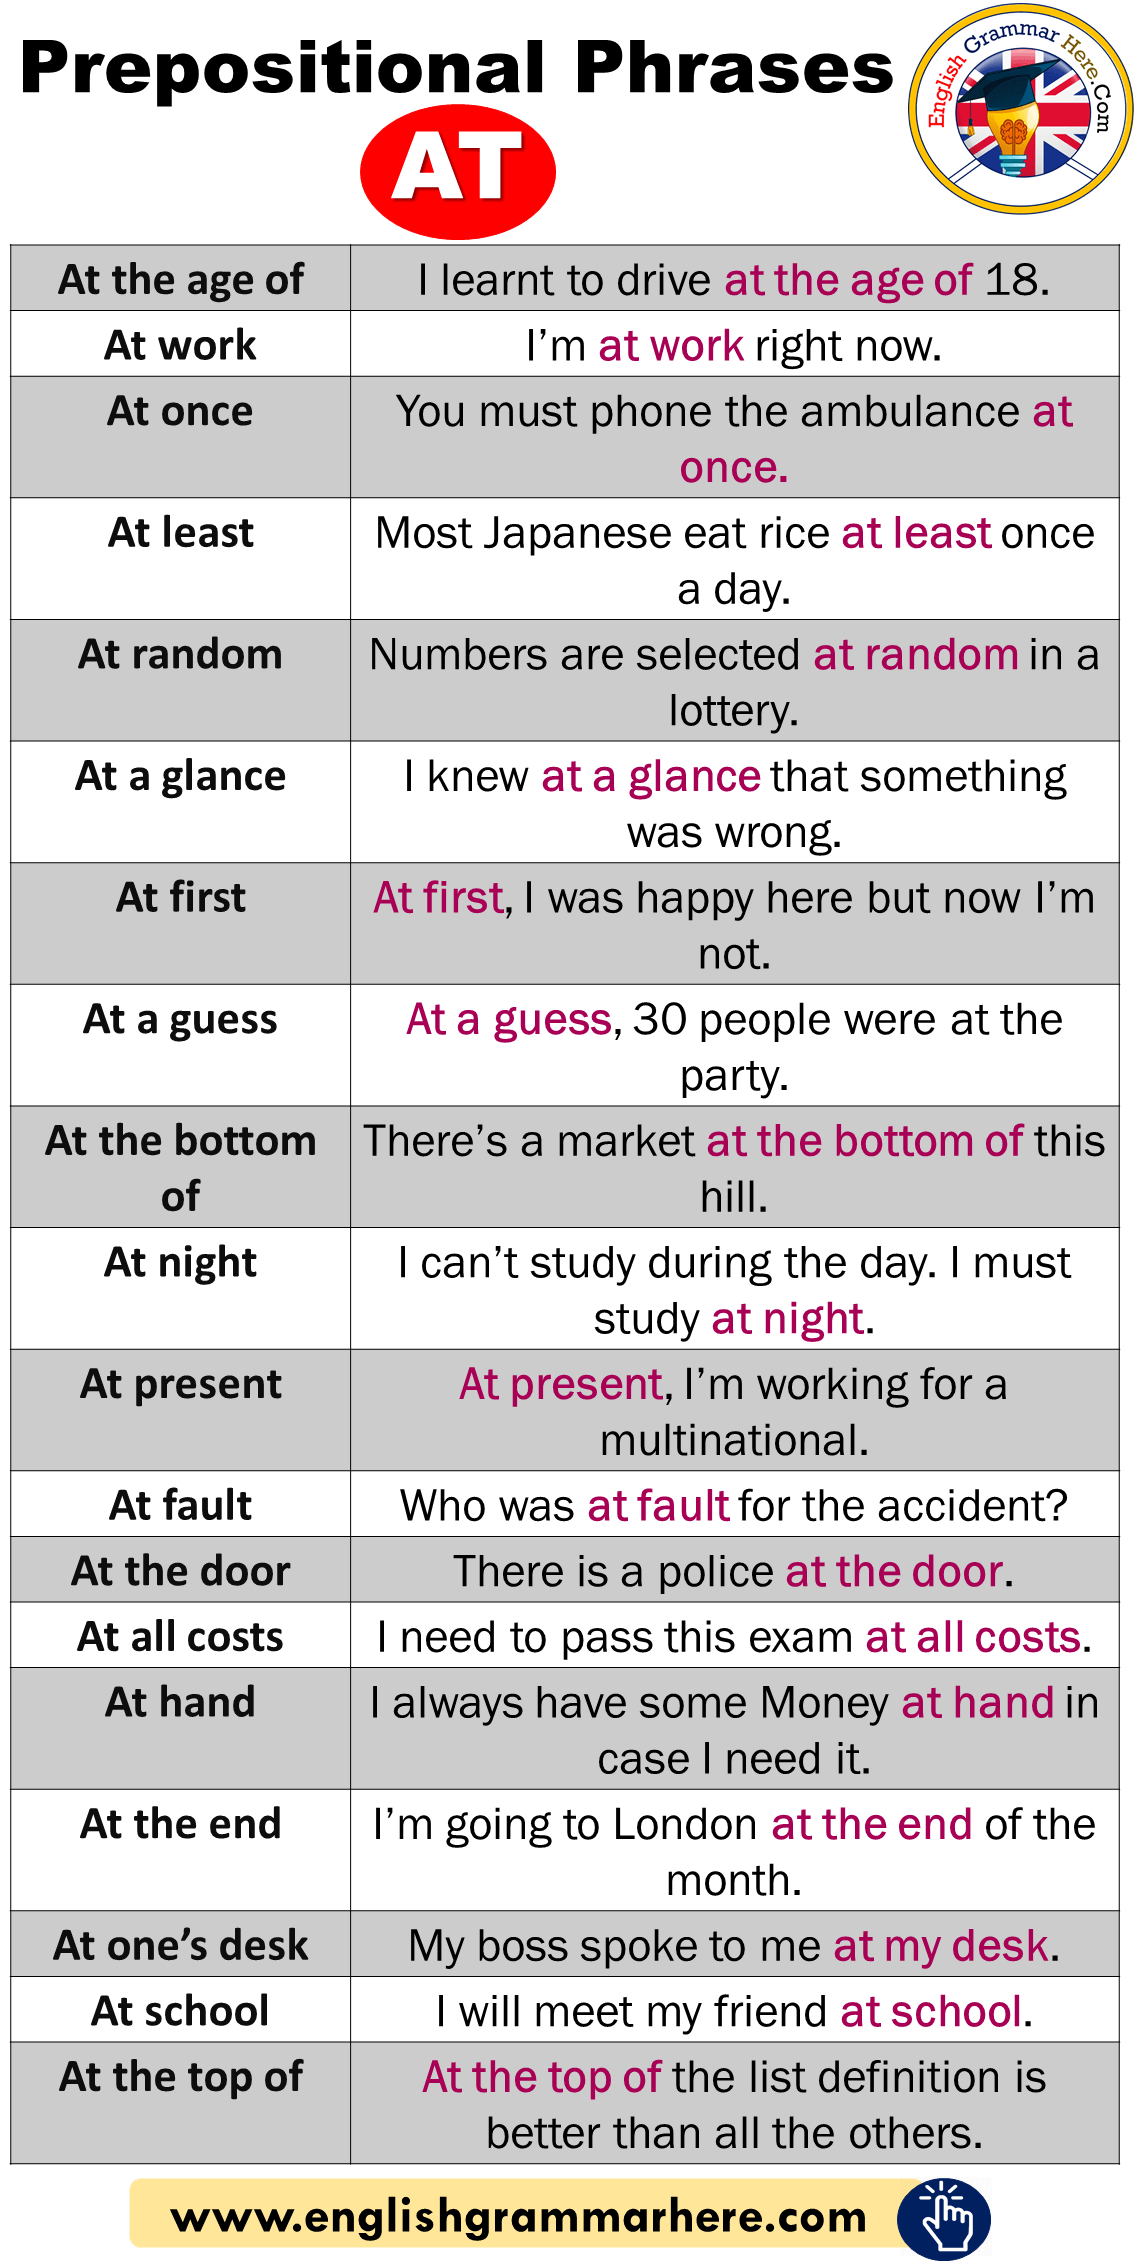 English Phrases List, Prepositional Phrases AT, Example Sentences